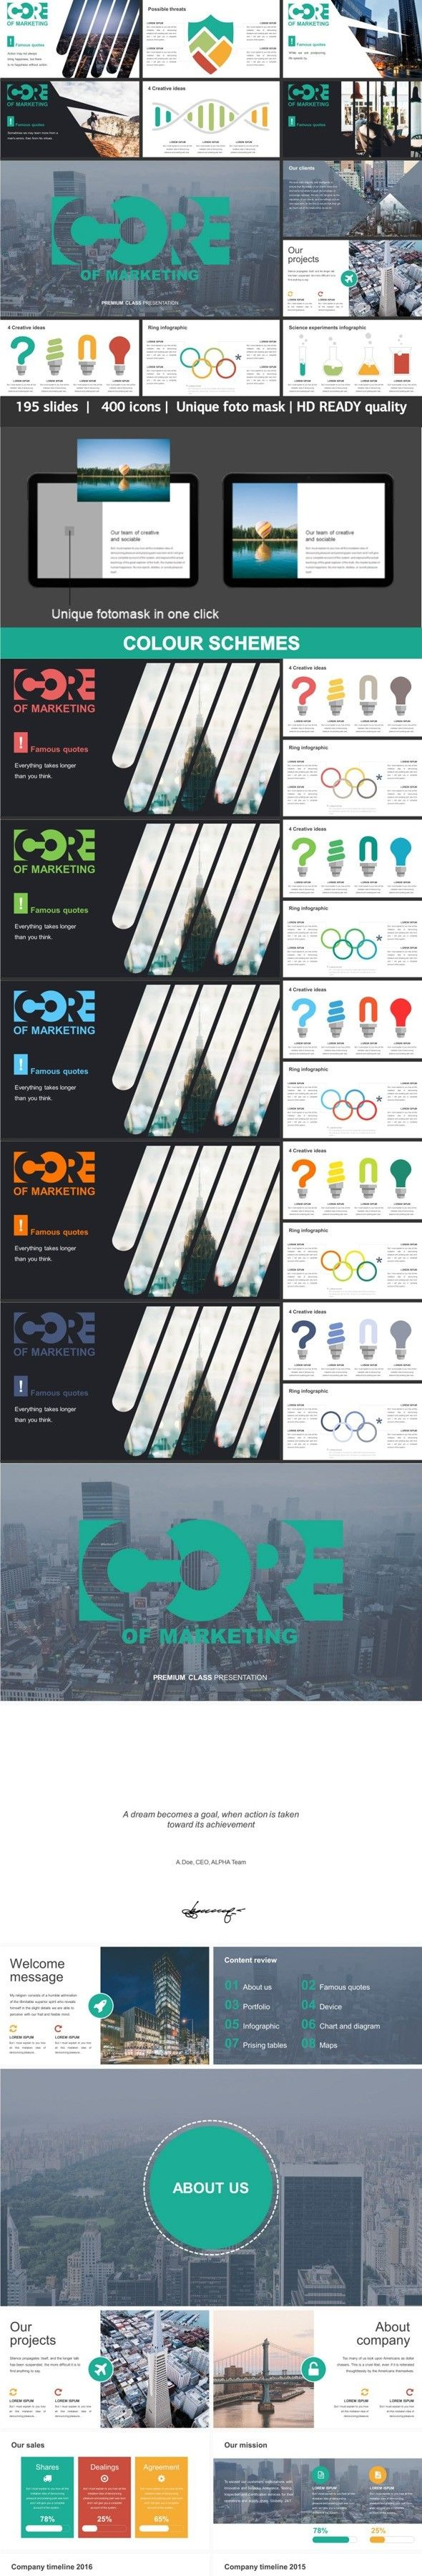 Core Of Marketing Powerpoint Creative Template Business Proposal Vector Idea Infographic With Light Bulb For Diagram Templates Pinterest Annual Reports And Mockup